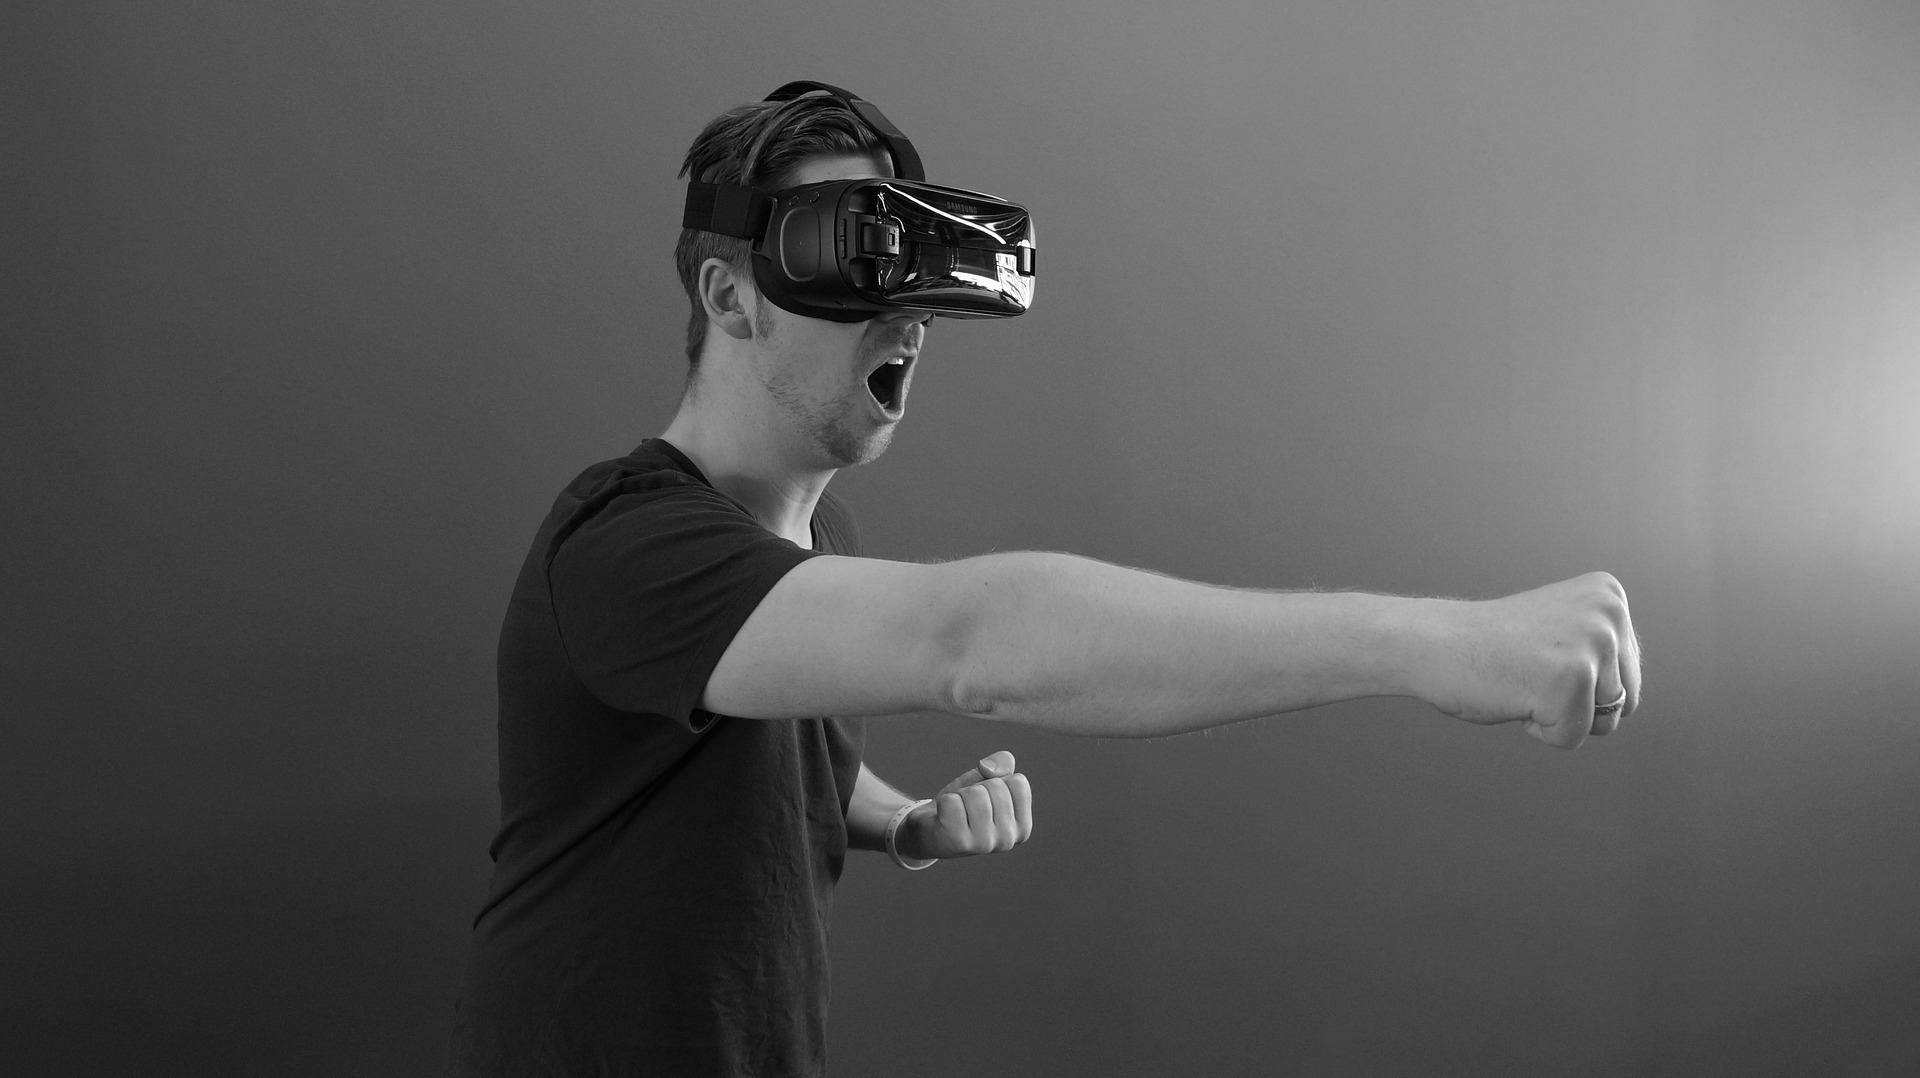 Man using Virtual Reality VR, wearing headset